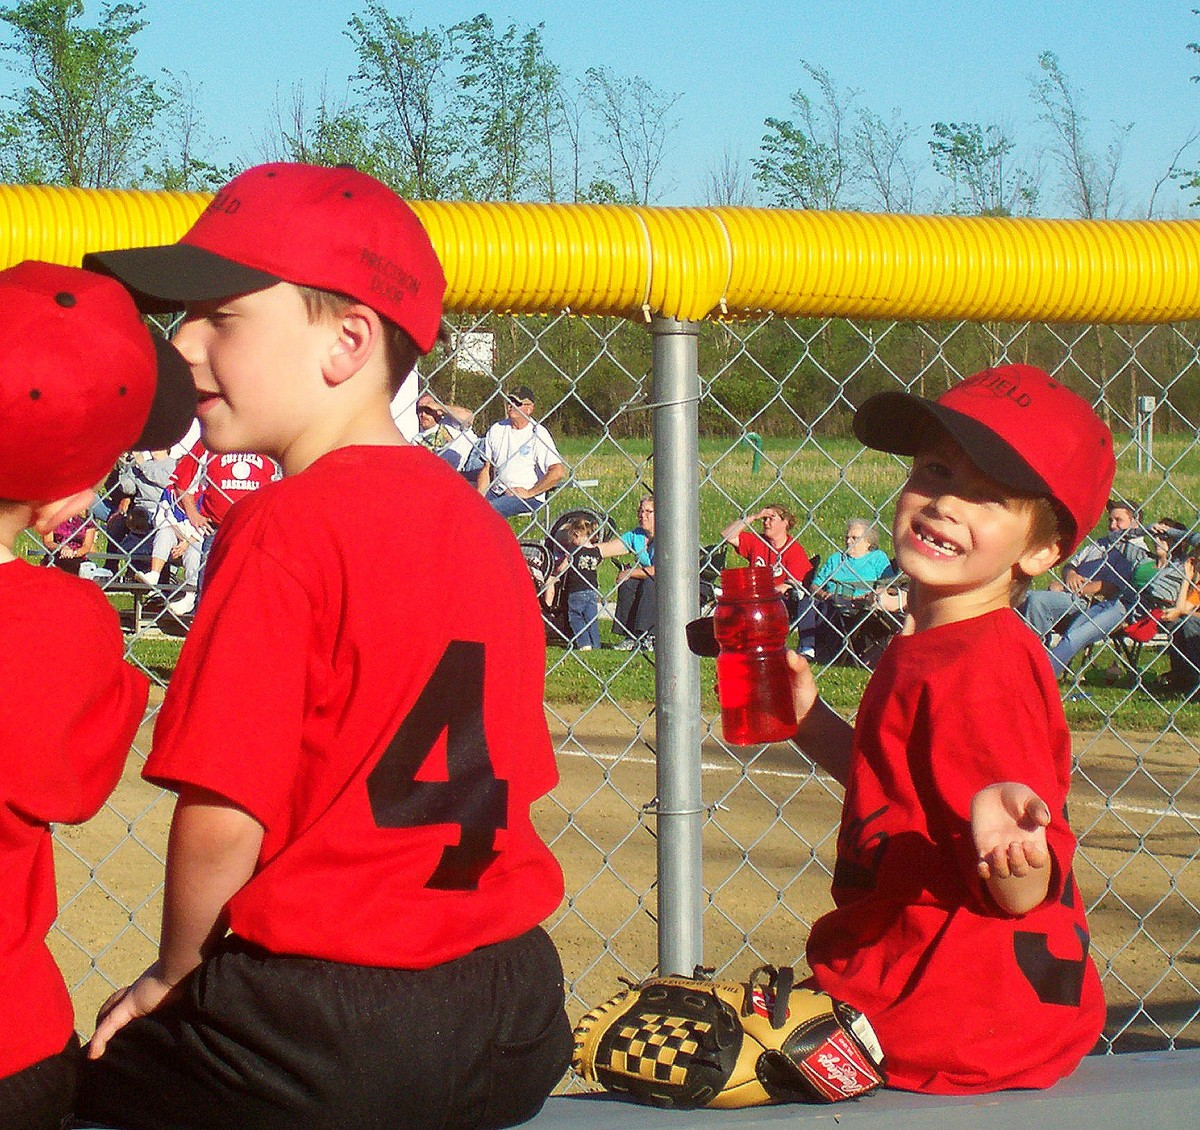 Basic Pitching Rules and Techniques for Little League Baseball